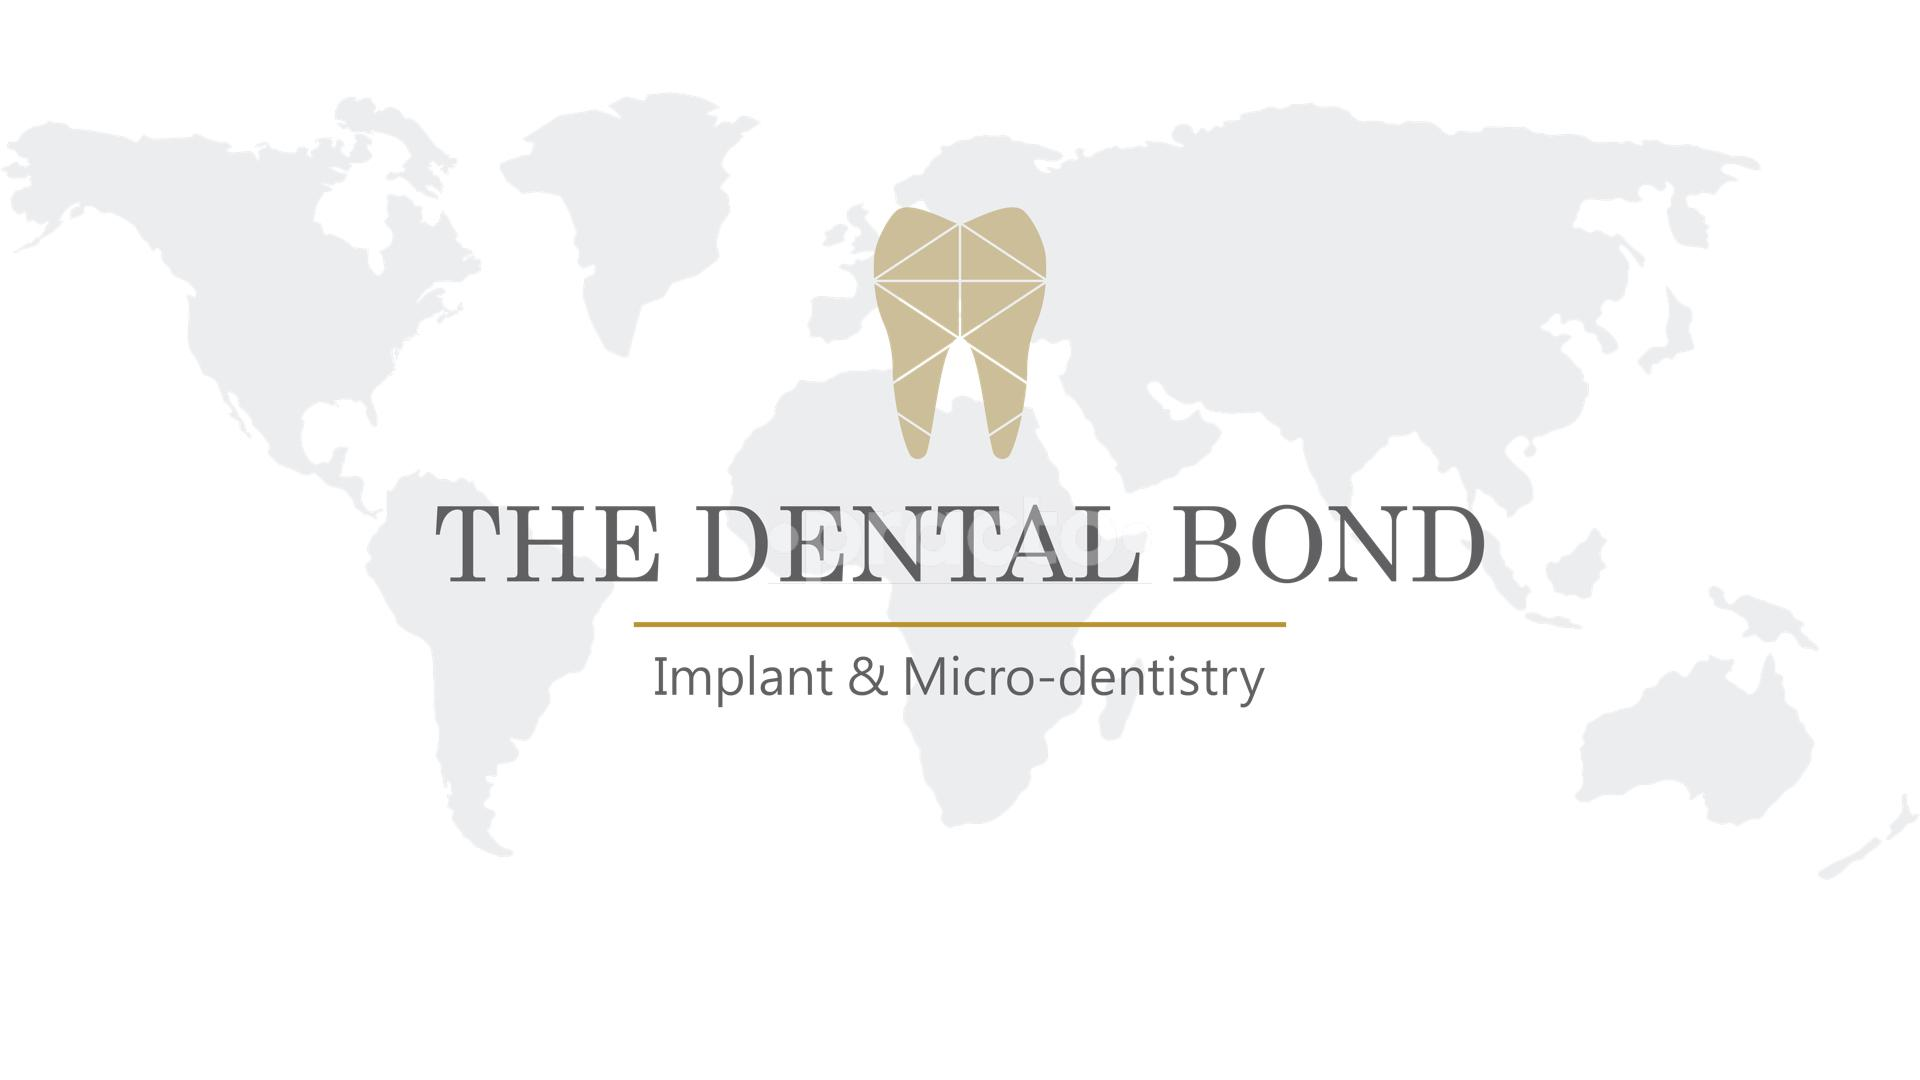 The Dental Bond-Implant & Mico-Dentisry